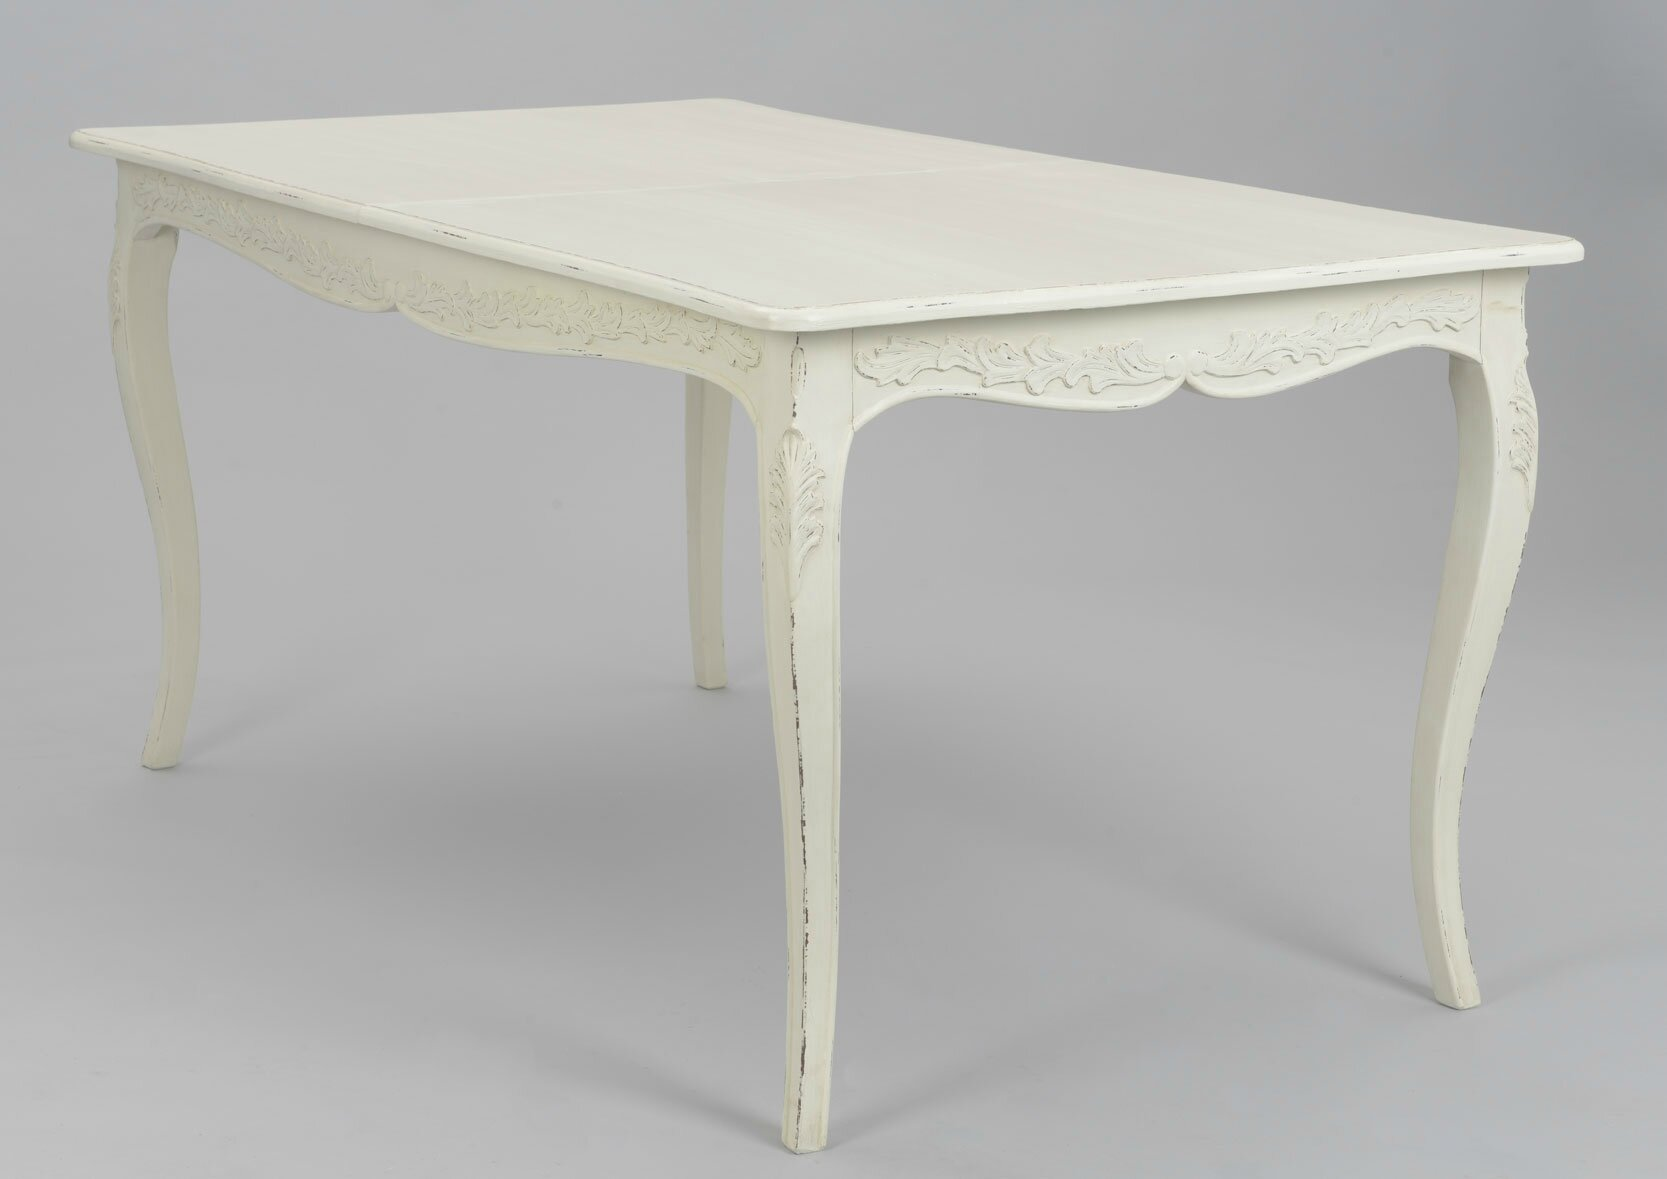 Table Blanche Rectangulaire Table Blanche Rallonge Maison Design Wiblia